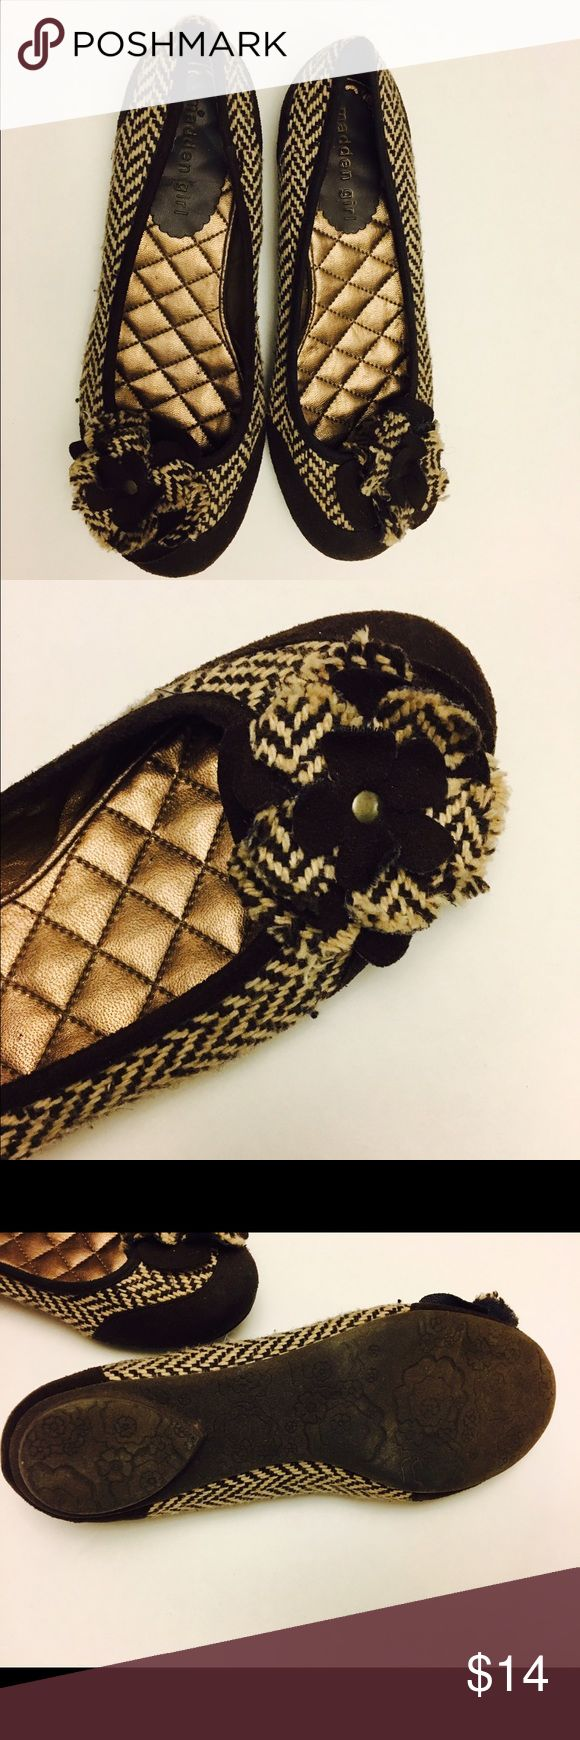 Madden Girl brown & tan flats with a flower Madden Girl brown & tan flats with a flower Madden Girl Shoes Flats & Loafers